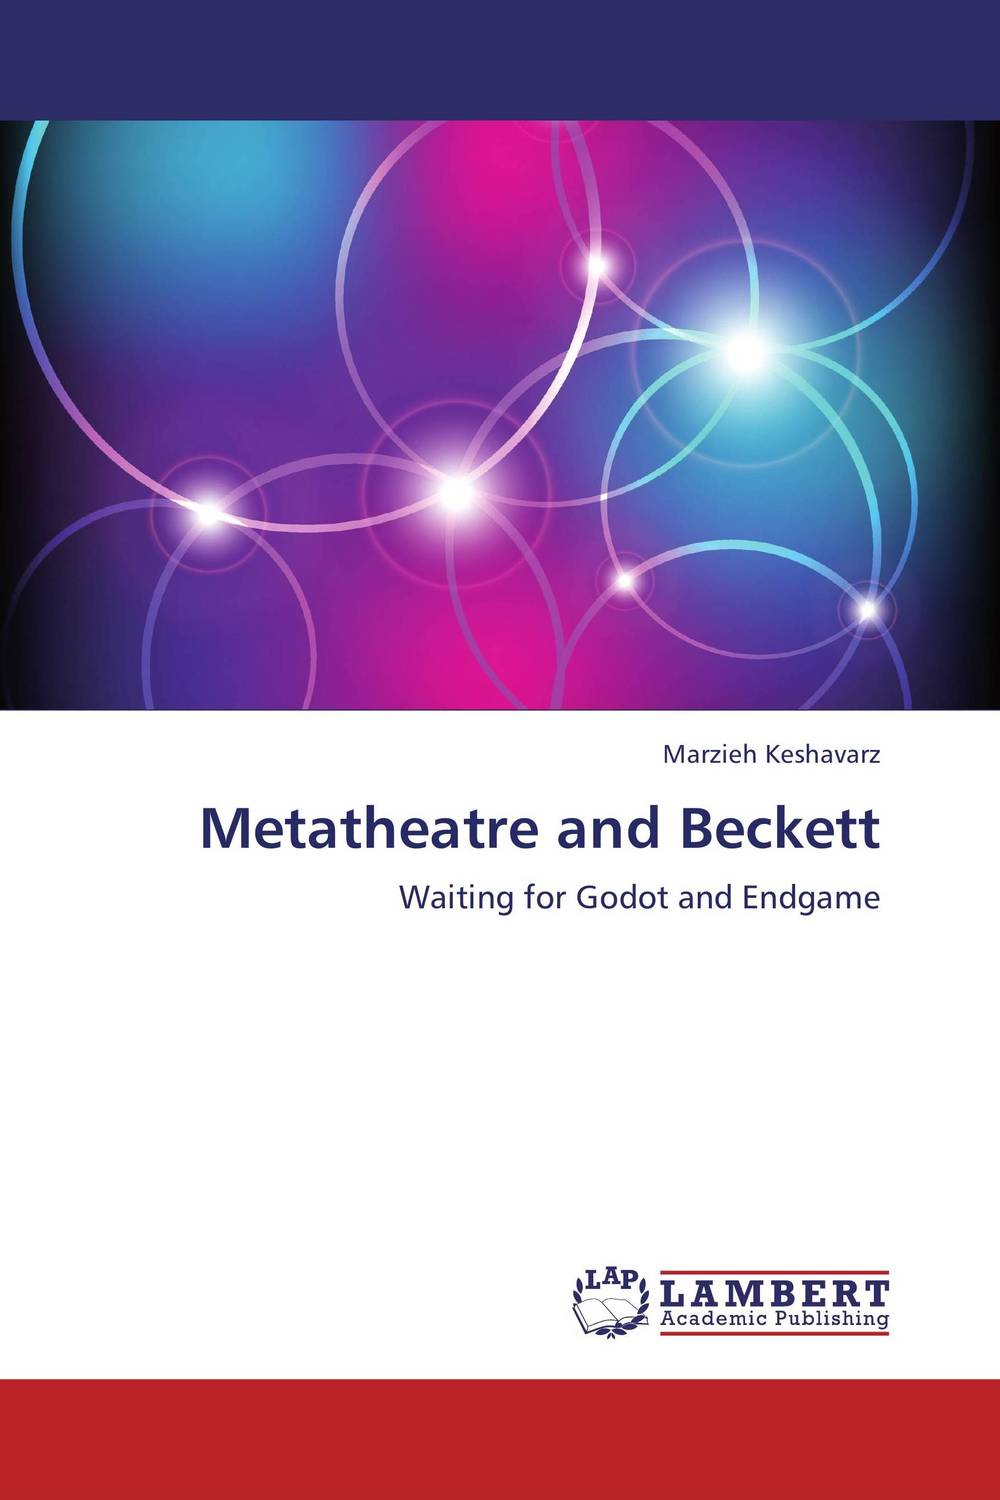 Metatheatre and Beckett metatheatre and beckett